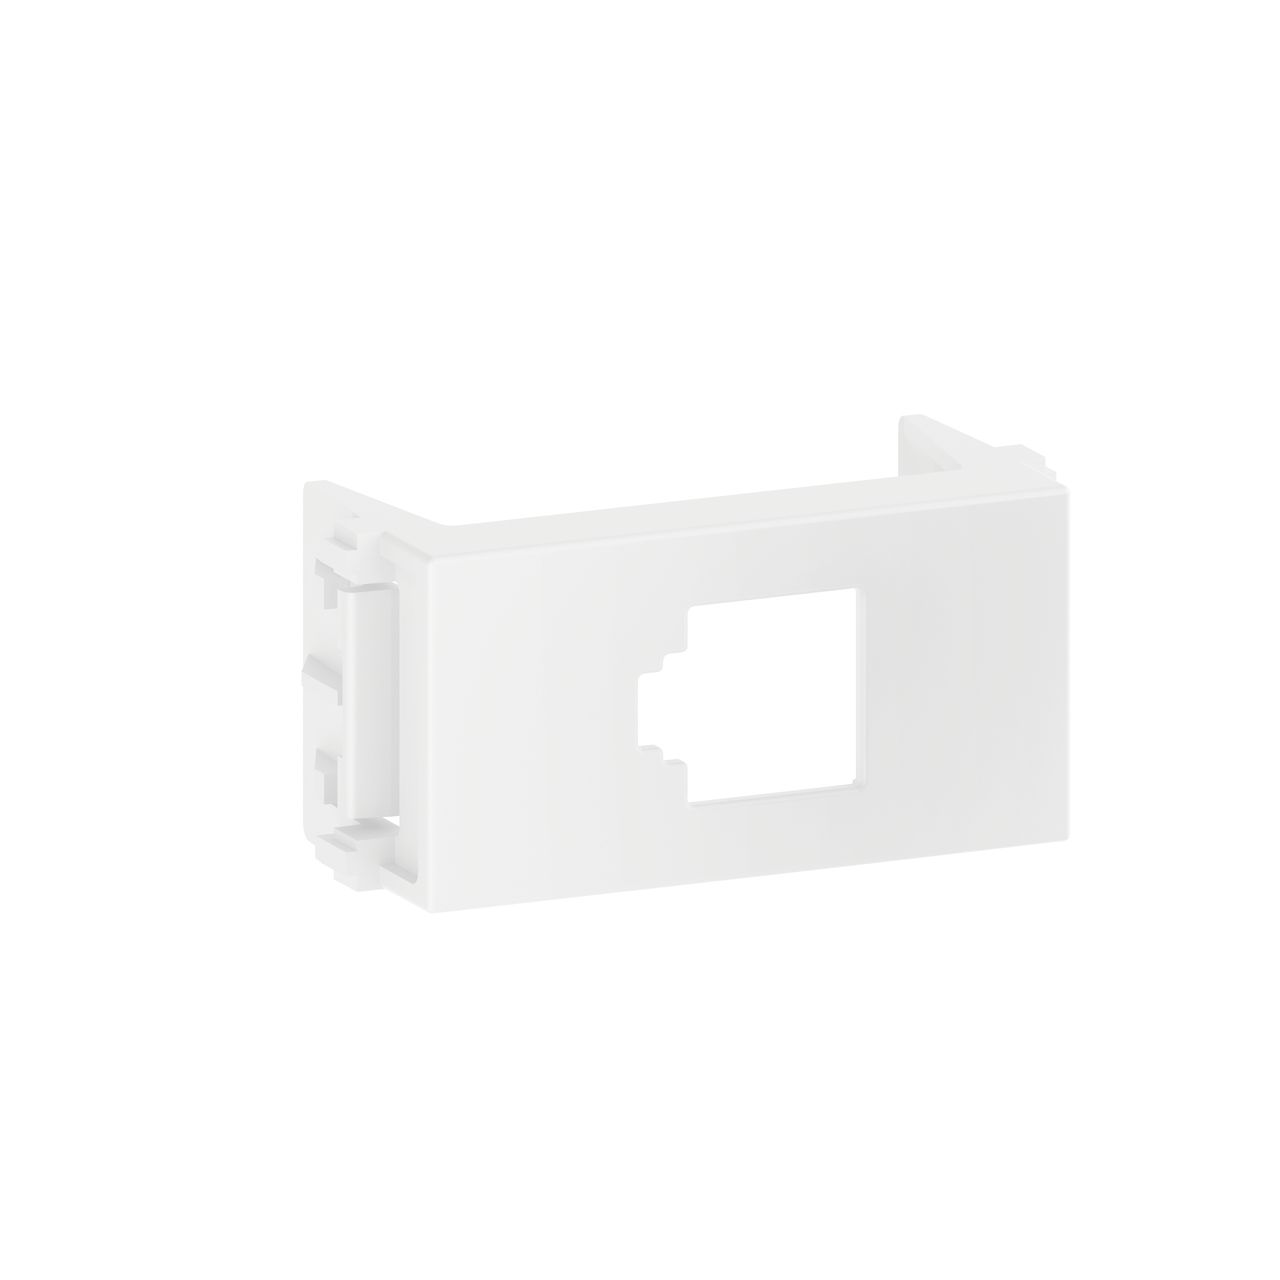 KIT MODULO P/ RJ45 REFINATTO (2PC)